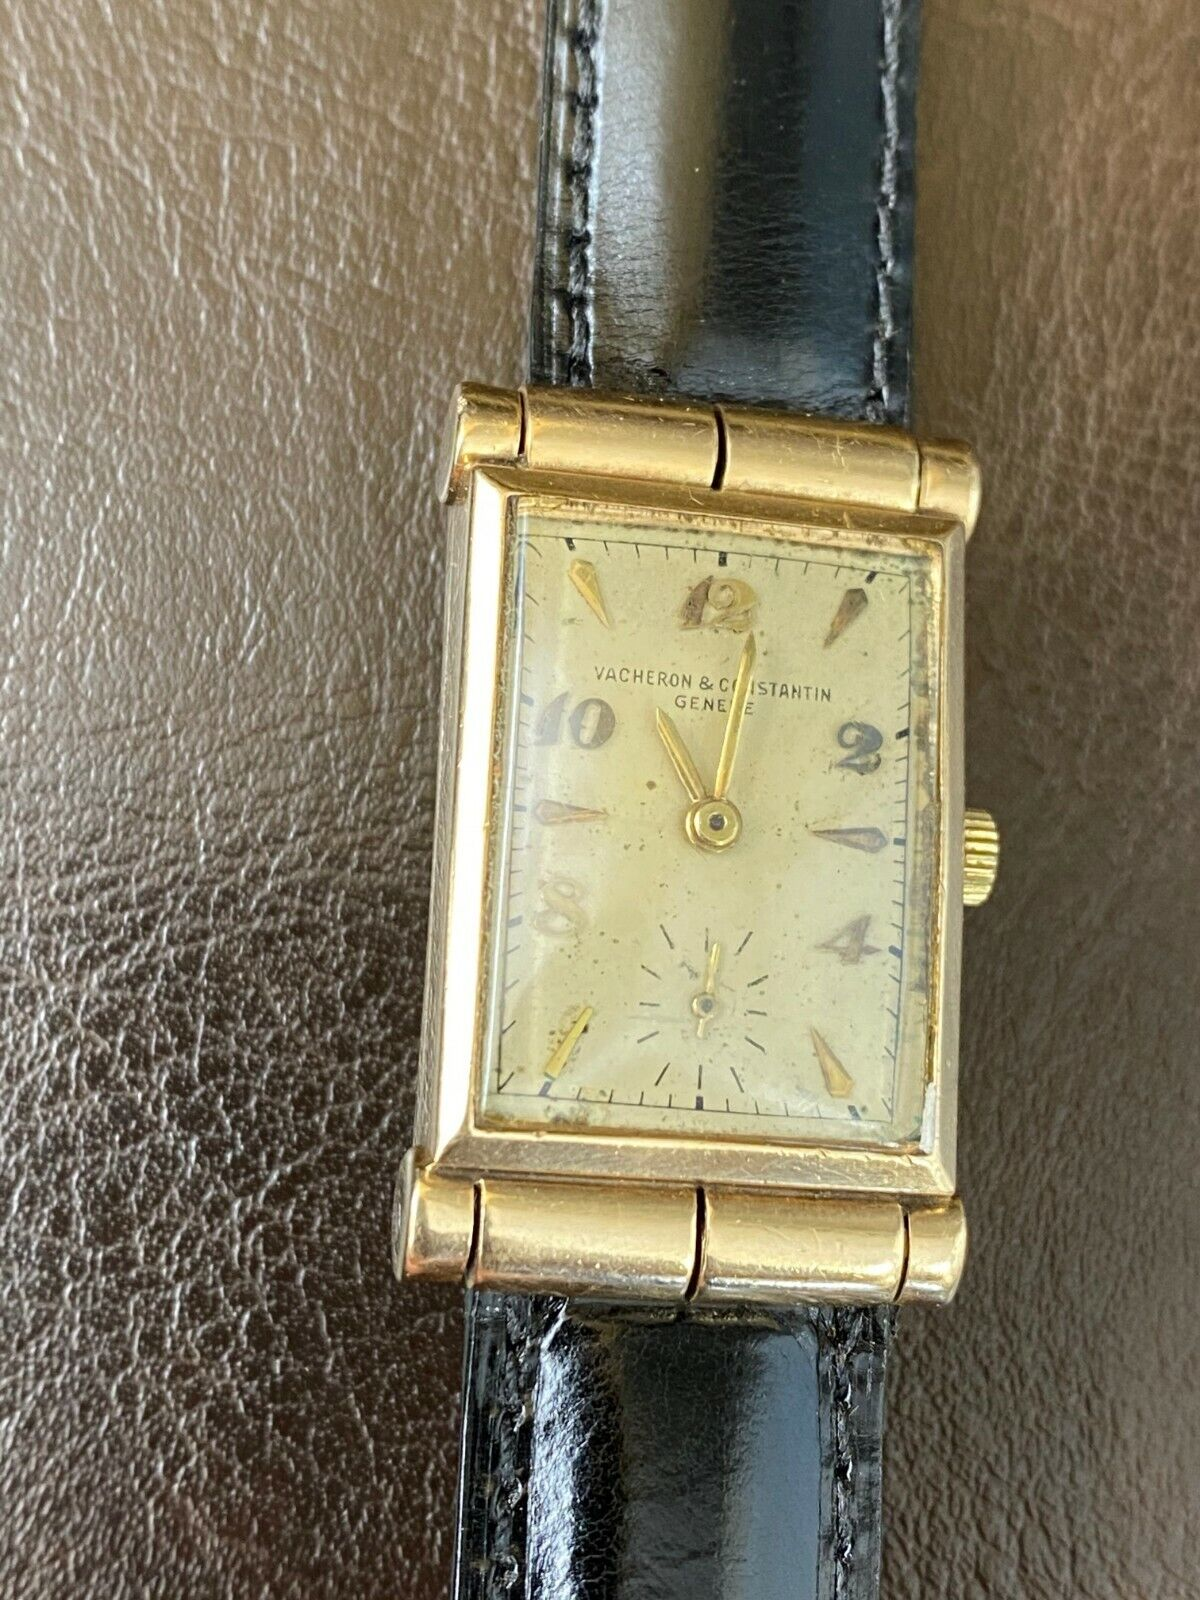 Vintage Vacheron Constantin 14K Yellow Gold Rectangular Watch 23mm x 34mm - watch picture 1